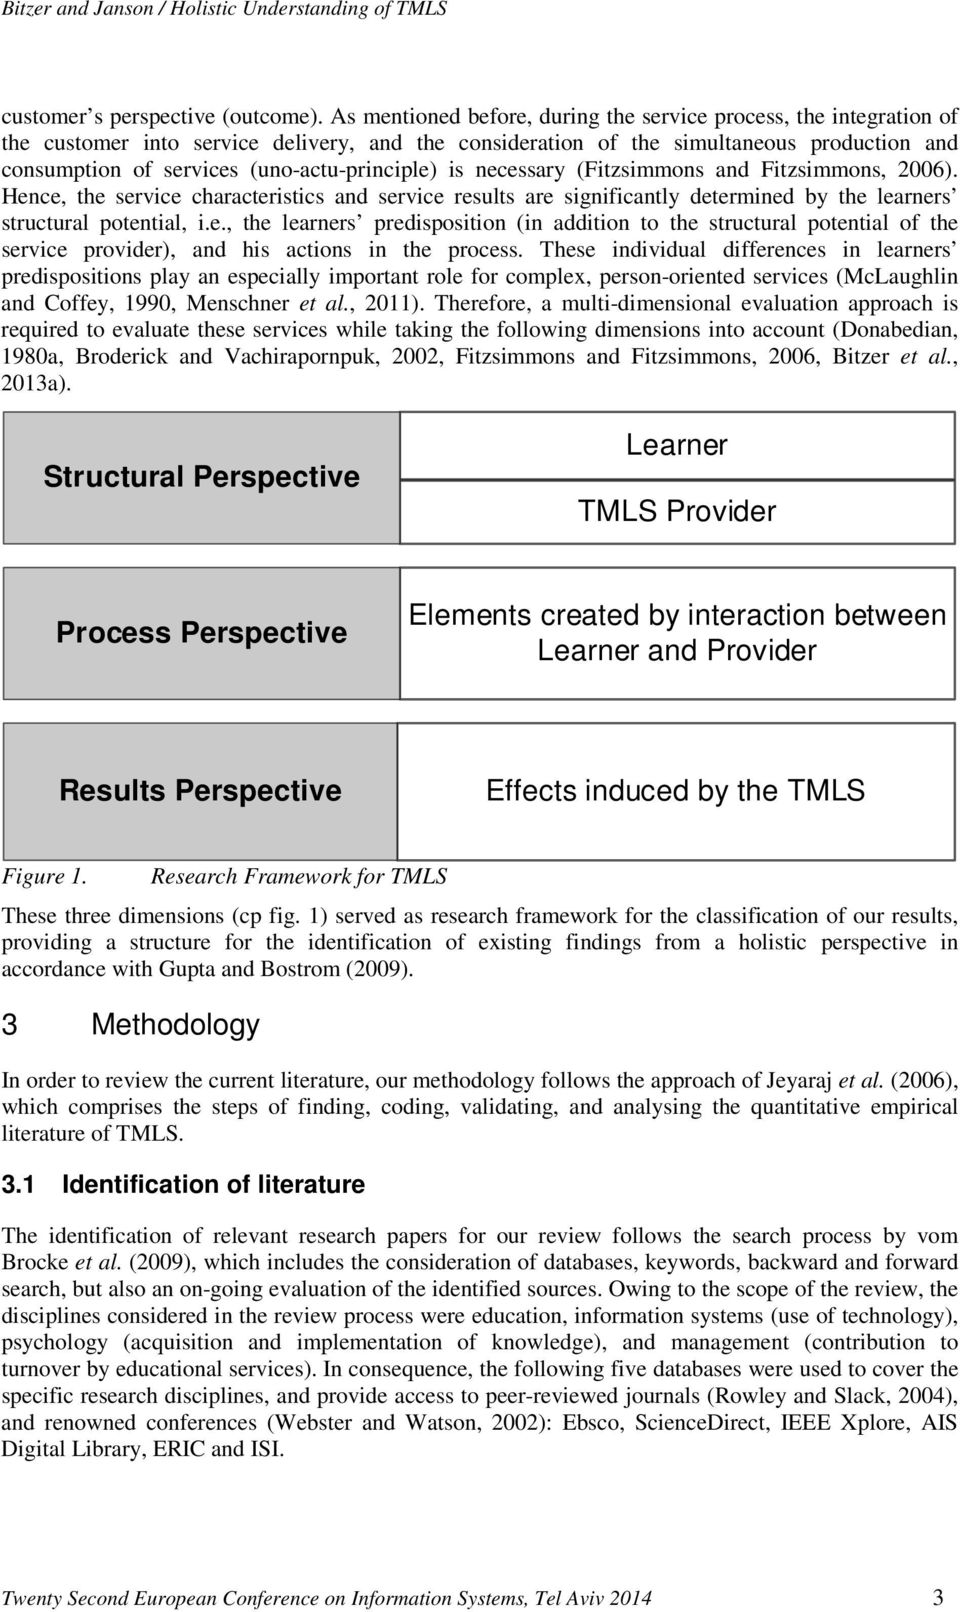 (uno-actu-principle) is necessary (Fitzsimmons and Fitzsimmons, 2006). Hence, the service characteristics and service results are significantly determined by the learners structural potential, i.e., the learners predisposition (in addition to the structural potential of the service provider), and his actions in the process.